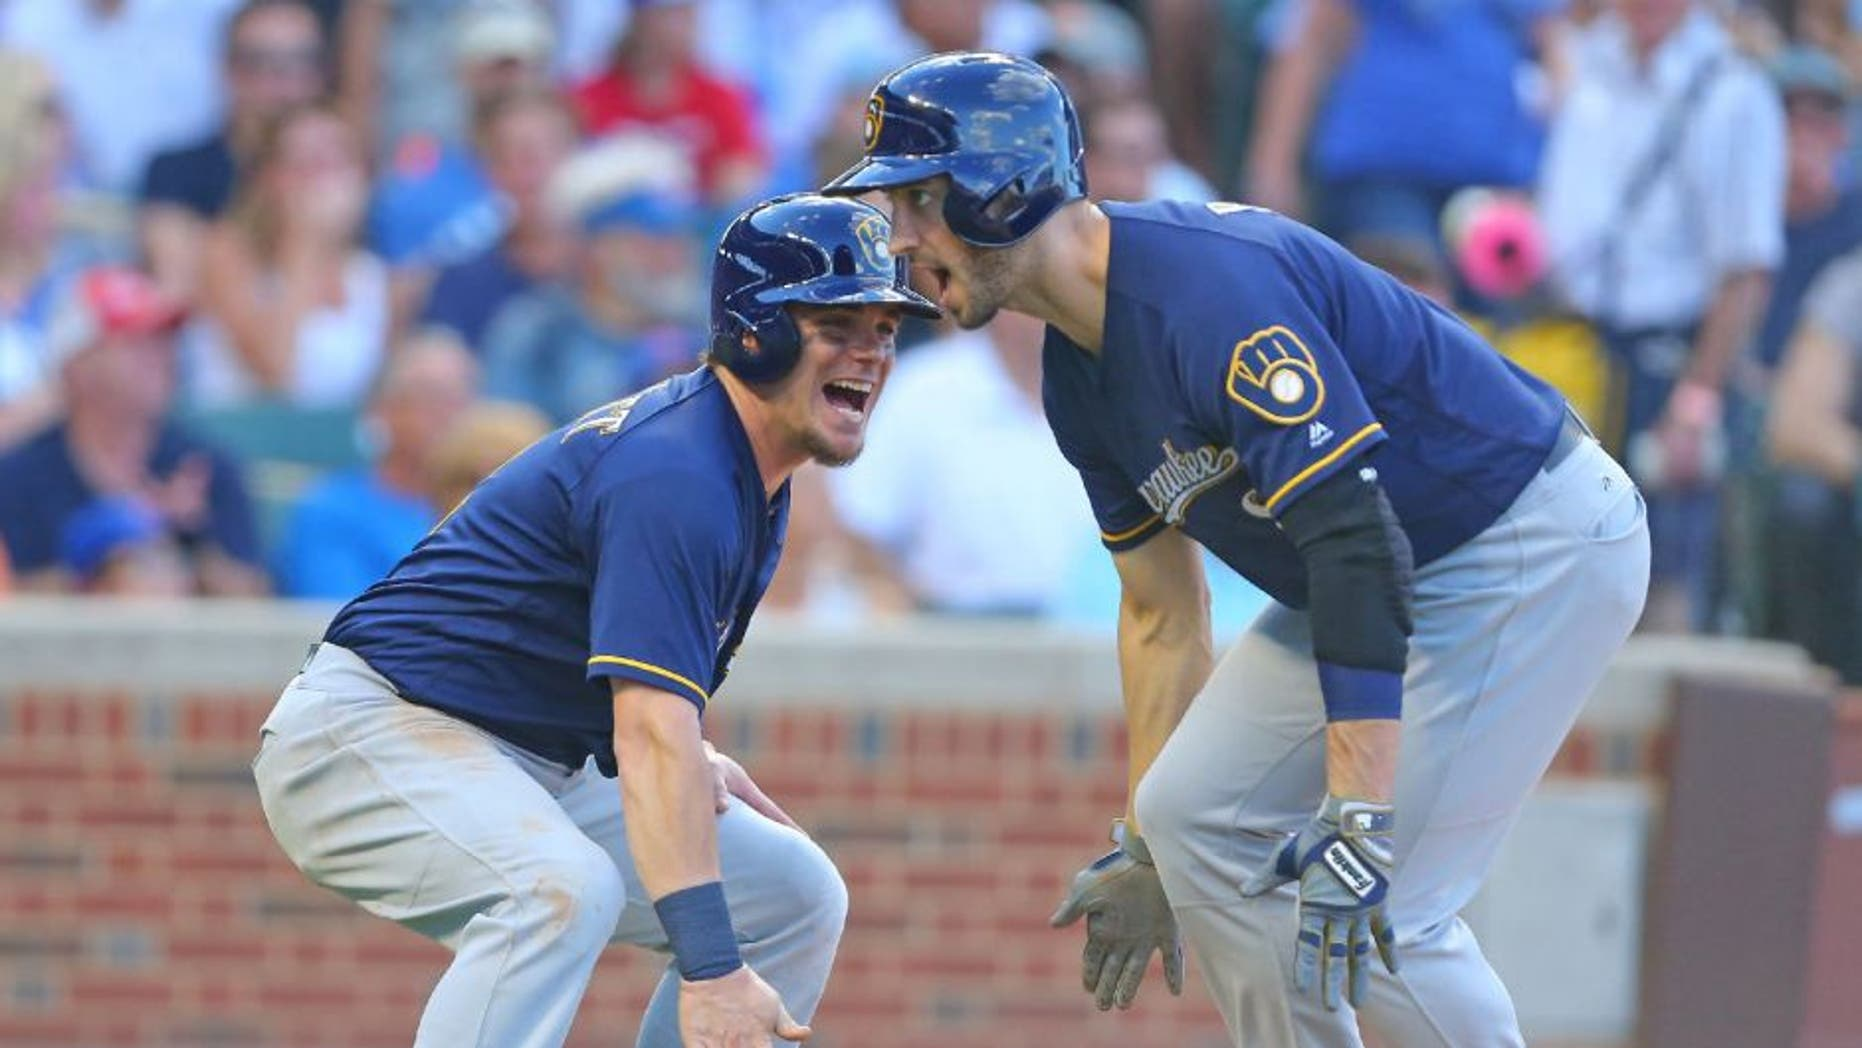 Milwaukee Brewers left fielder Ryan Braun celebrates his two RBI home run with second baseman Scooter Gennett during the sixth inning against the Chicago Cubs.